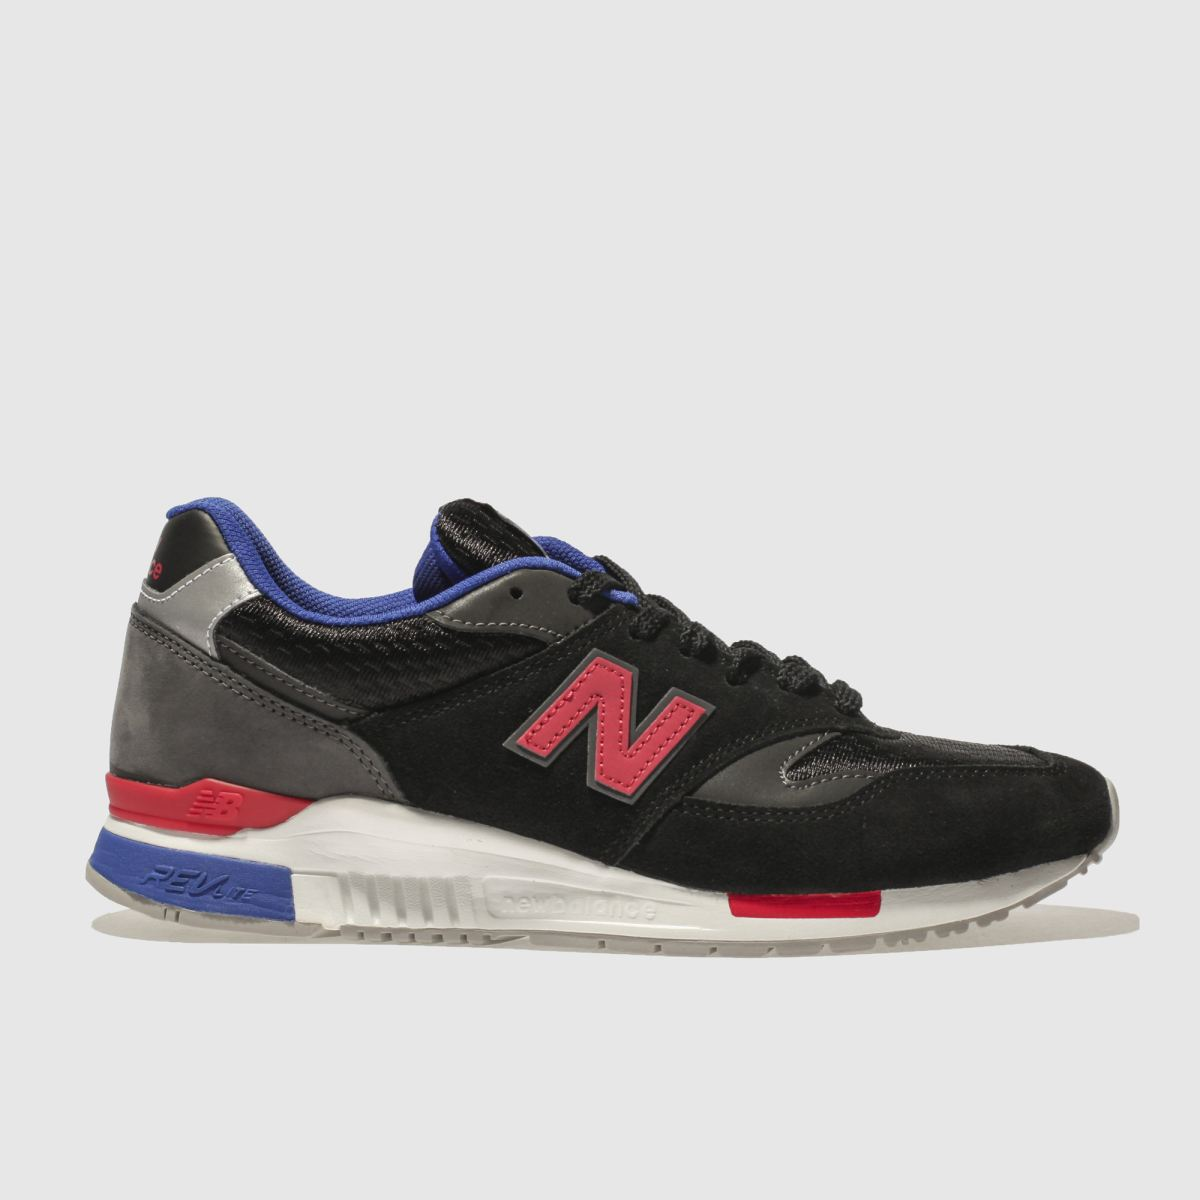 New Balance Black & Grey 840 Trainers